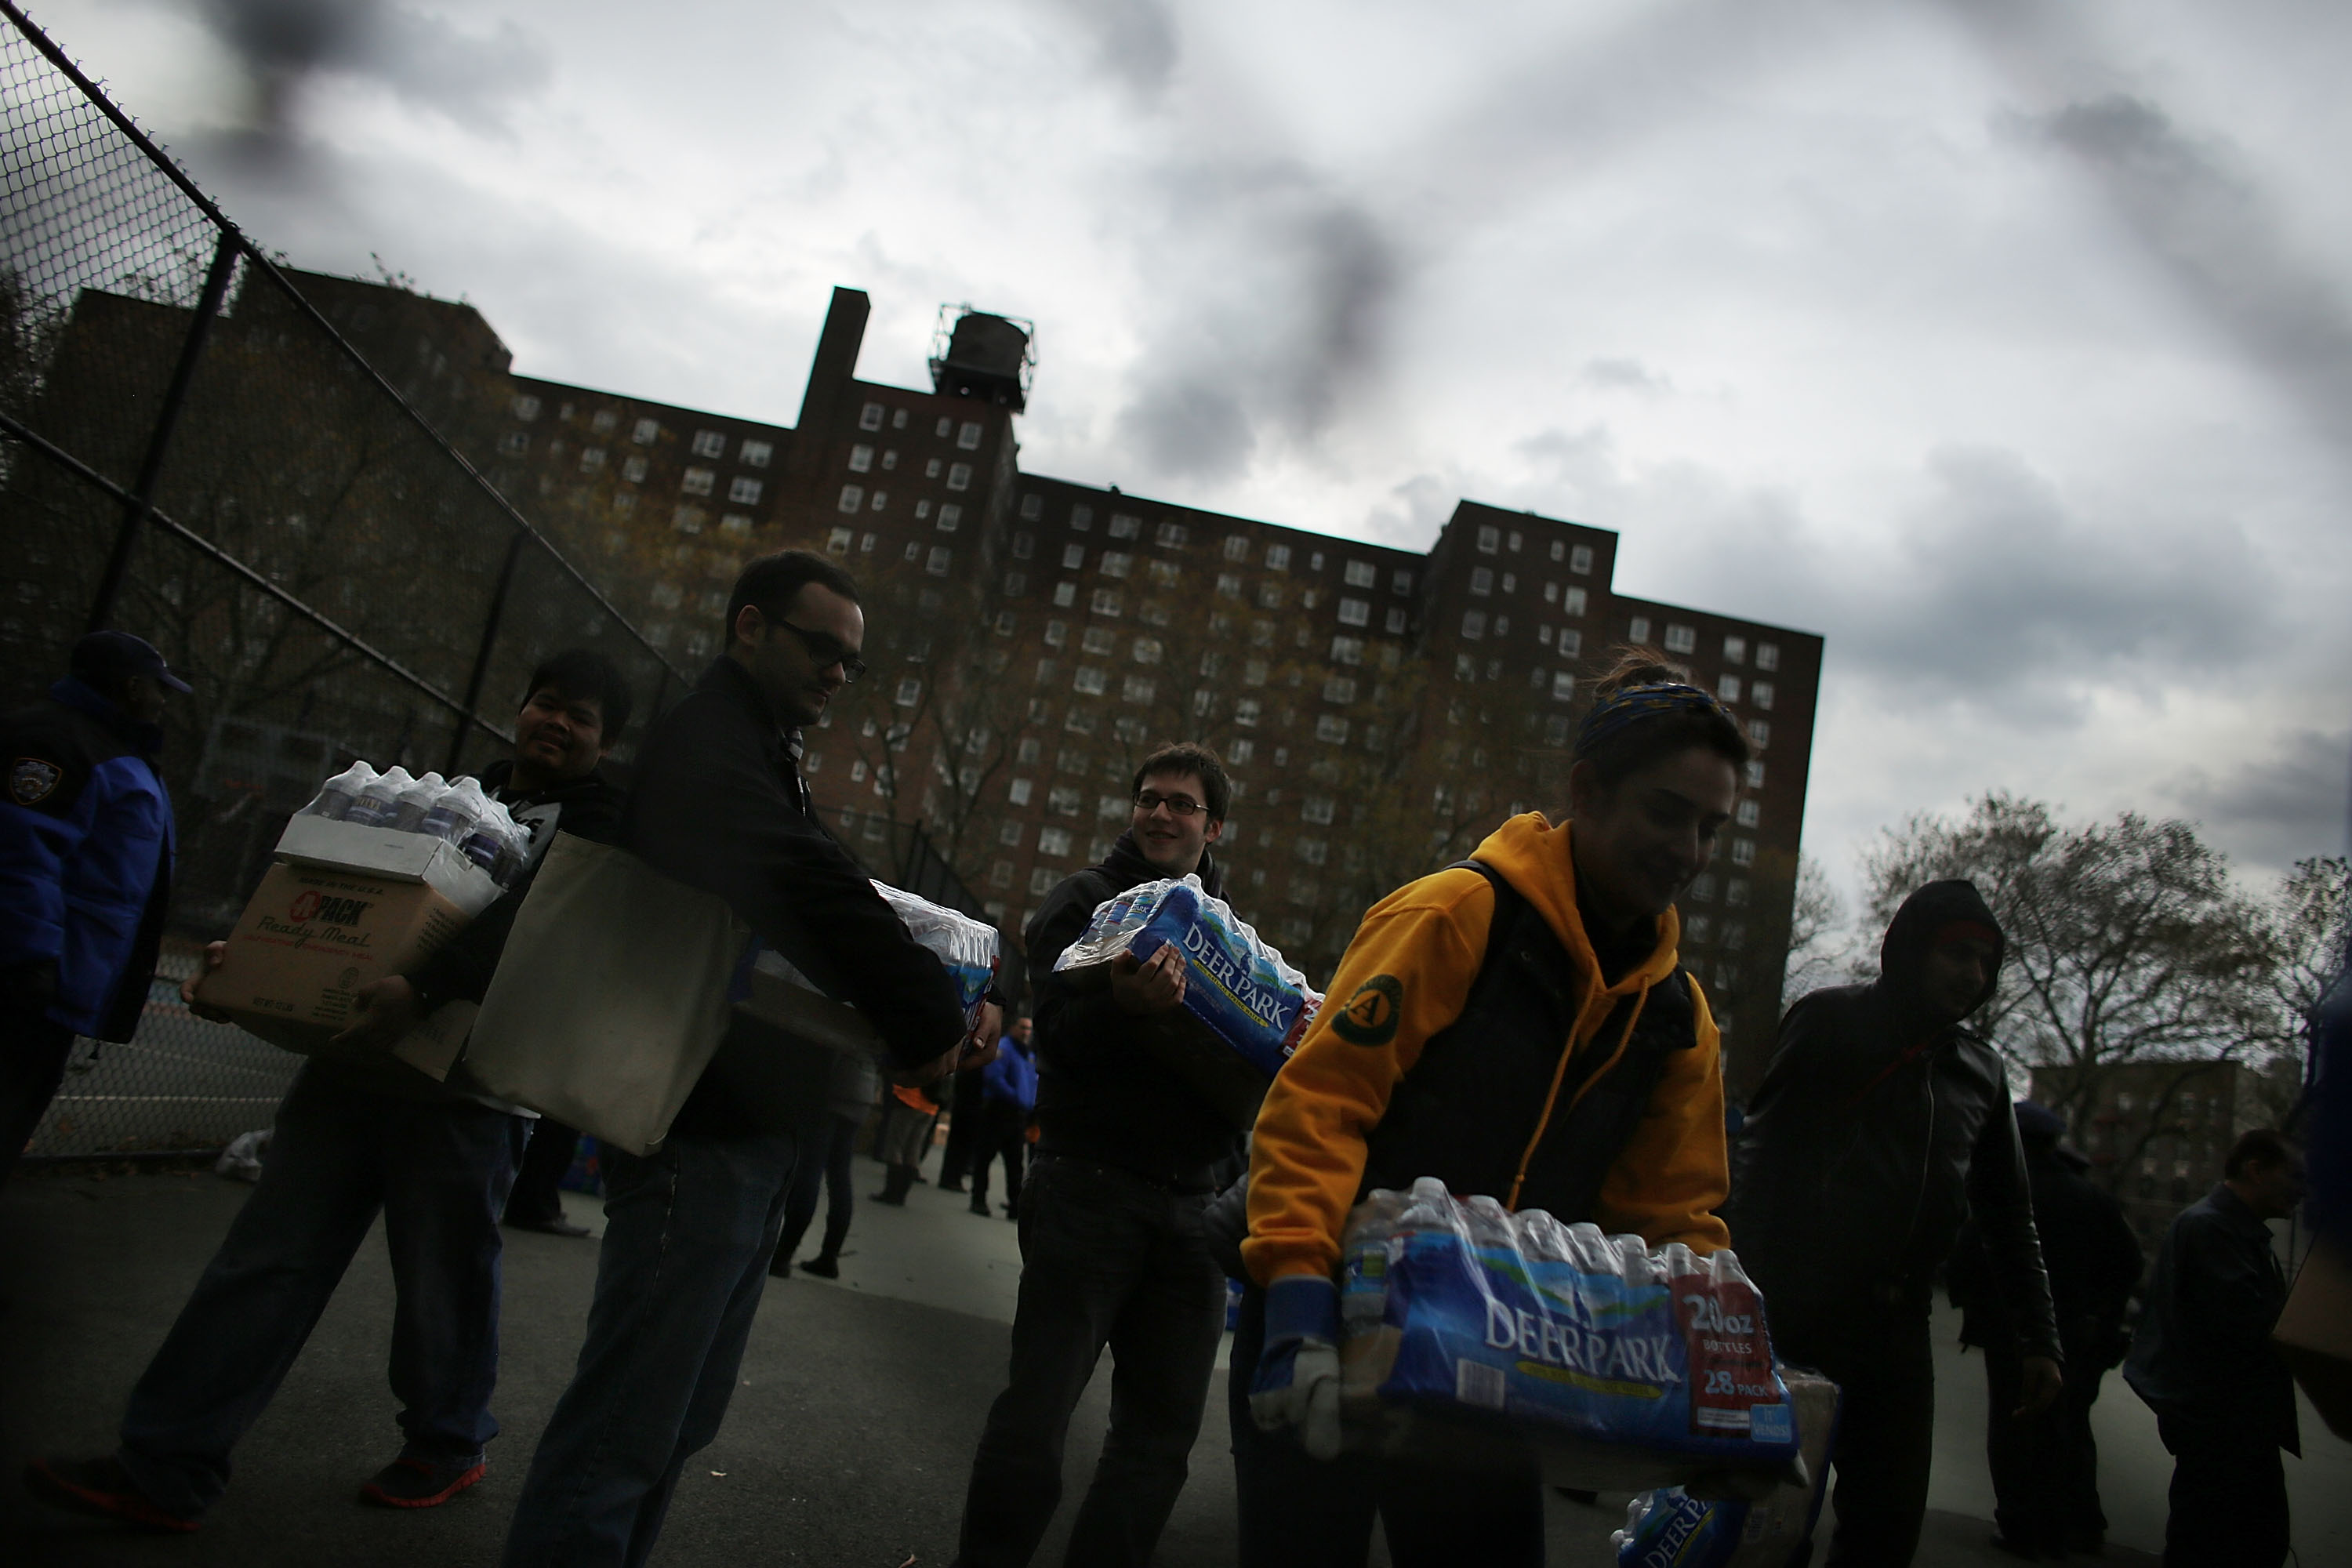 Through a chainlink fence a half dozen volunteers hold packages of bottled water. In the distance, a brown high-rise building part of the Red Hook Houses public housing complex can be seen.